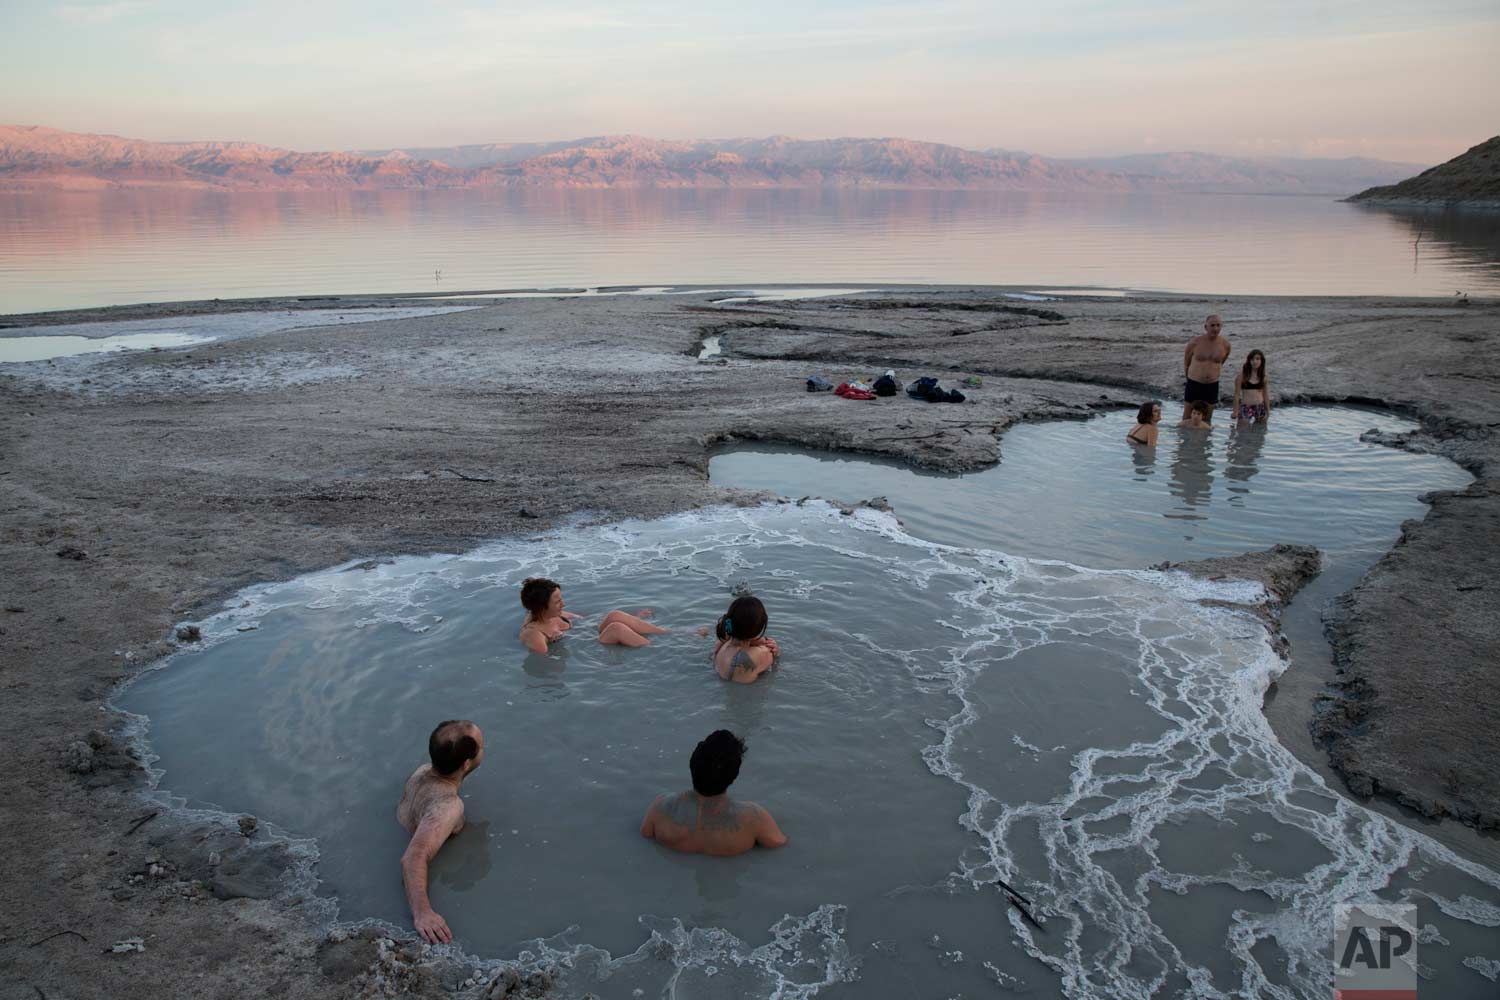 In this Friday, Nov. 24, 2017 photo, people enjoy a spring water pool along the Dead Sea shore near the Israeli Kibbutz of Ein Gedi. (AP Photo/Oded Balilty)